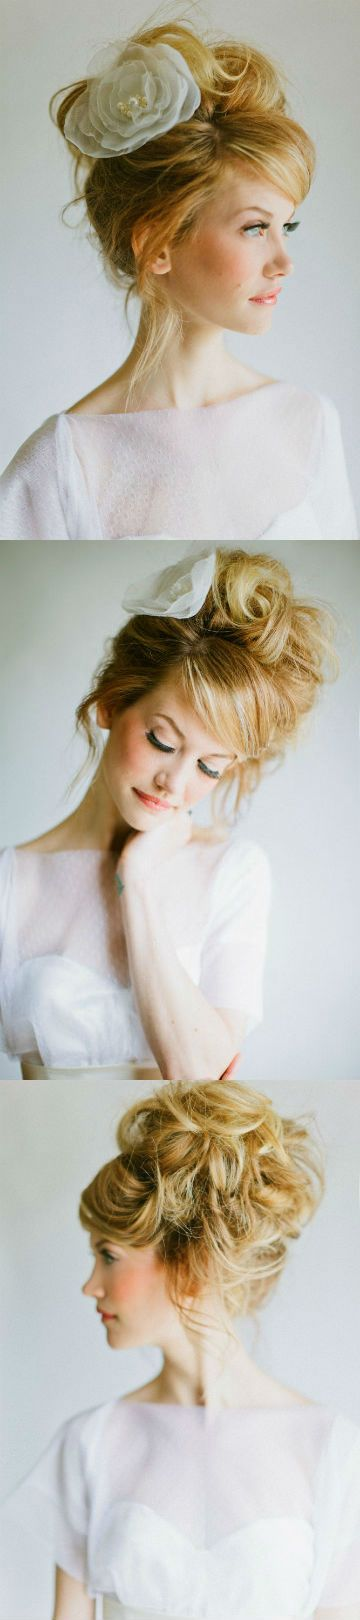 Wedding Messy Updo